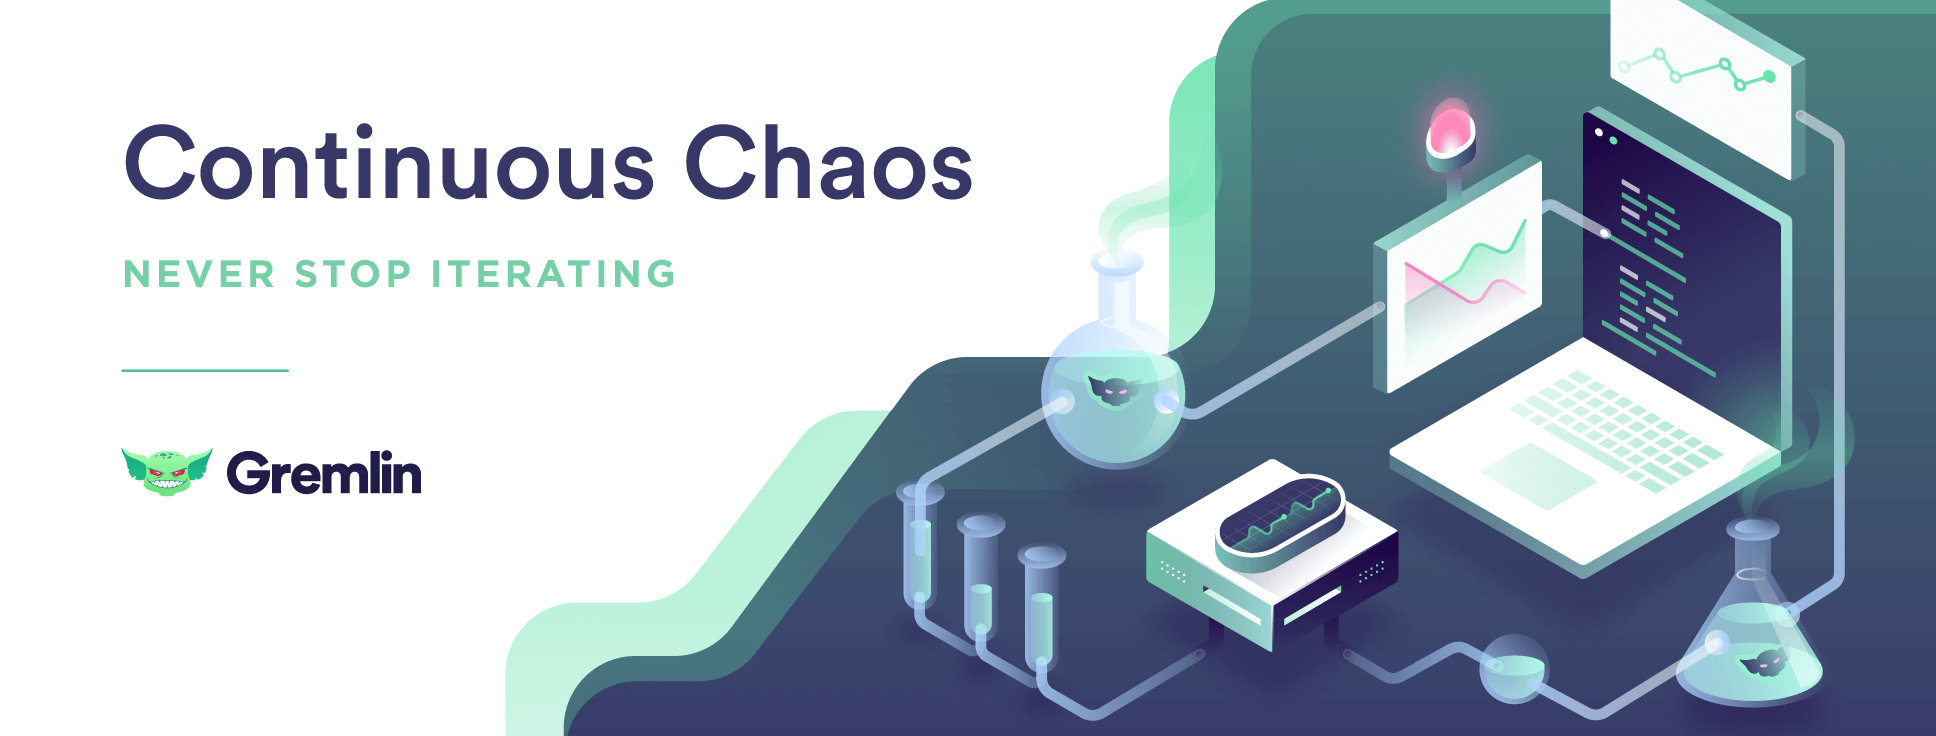 Continuous Chaos: Never Stop Iterating